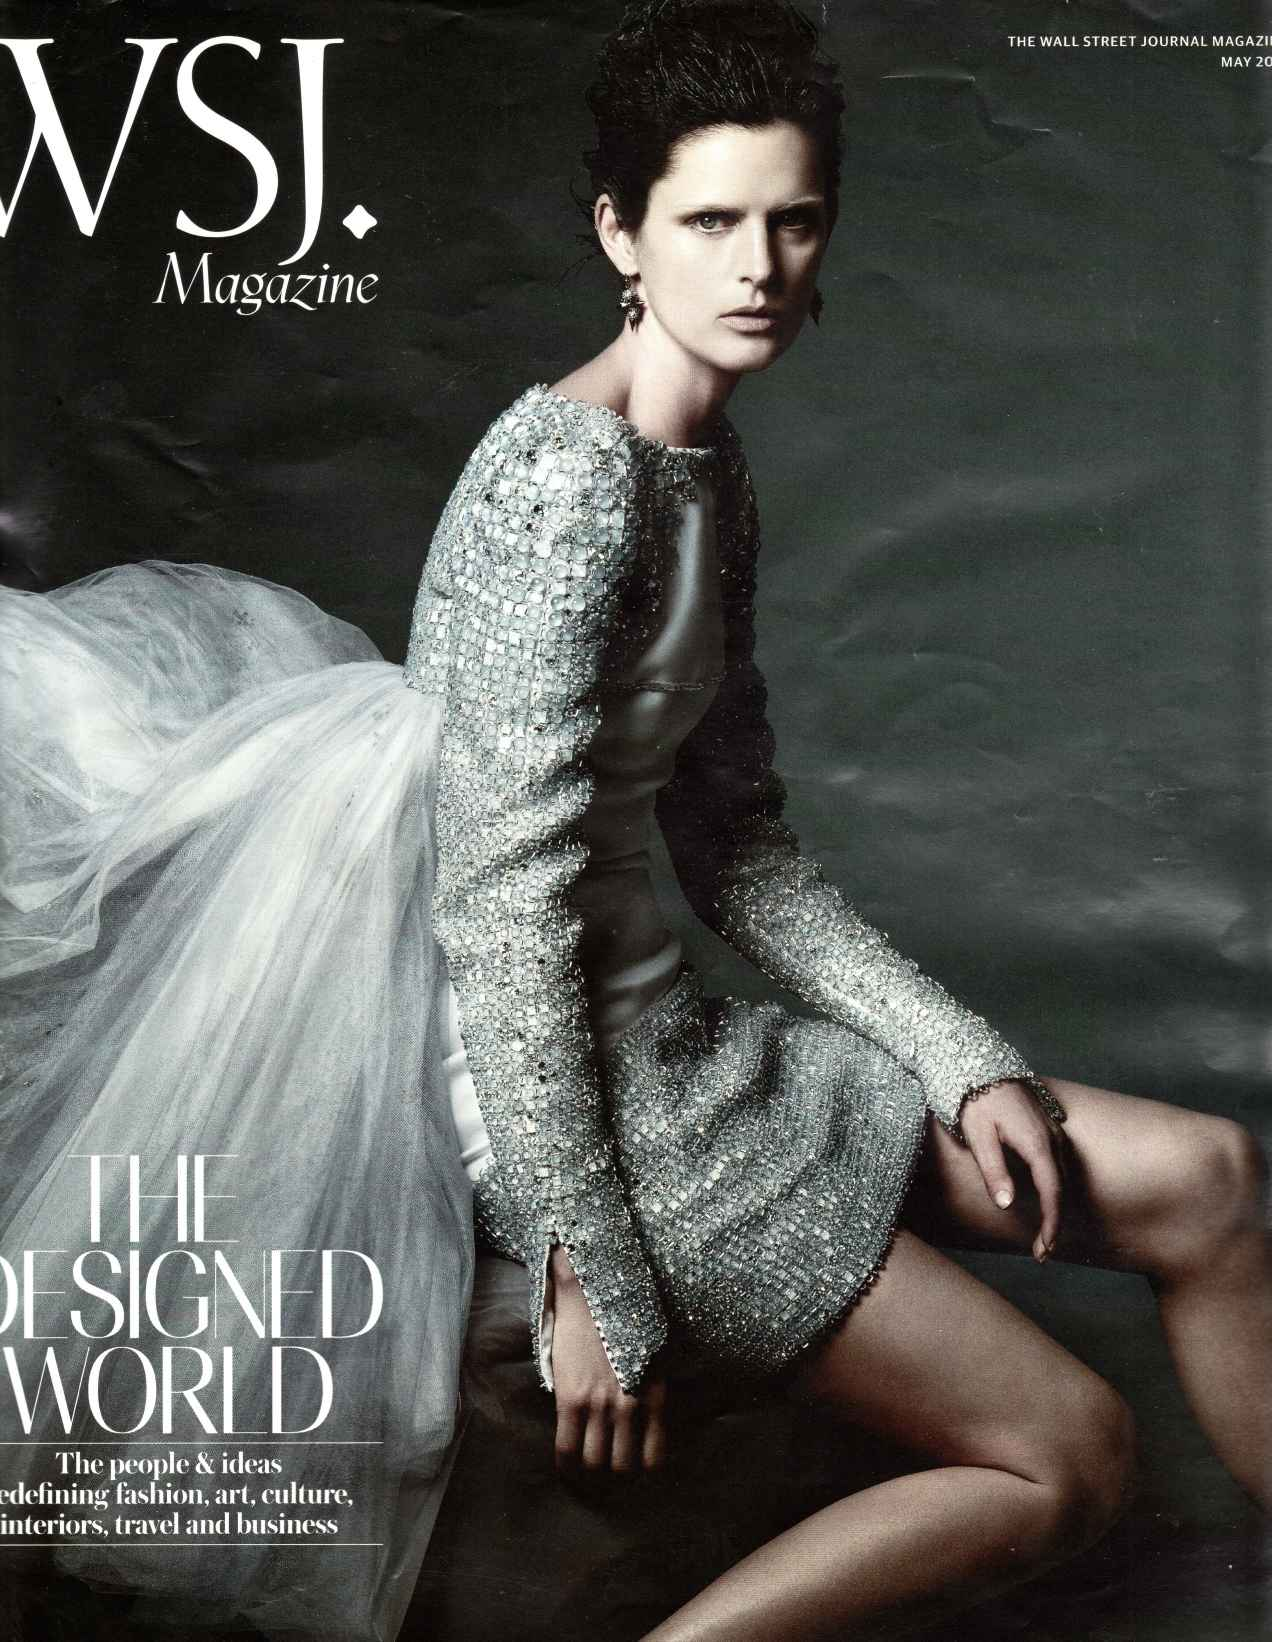 A half orc in a hauberk on the cover of WSJ magazine